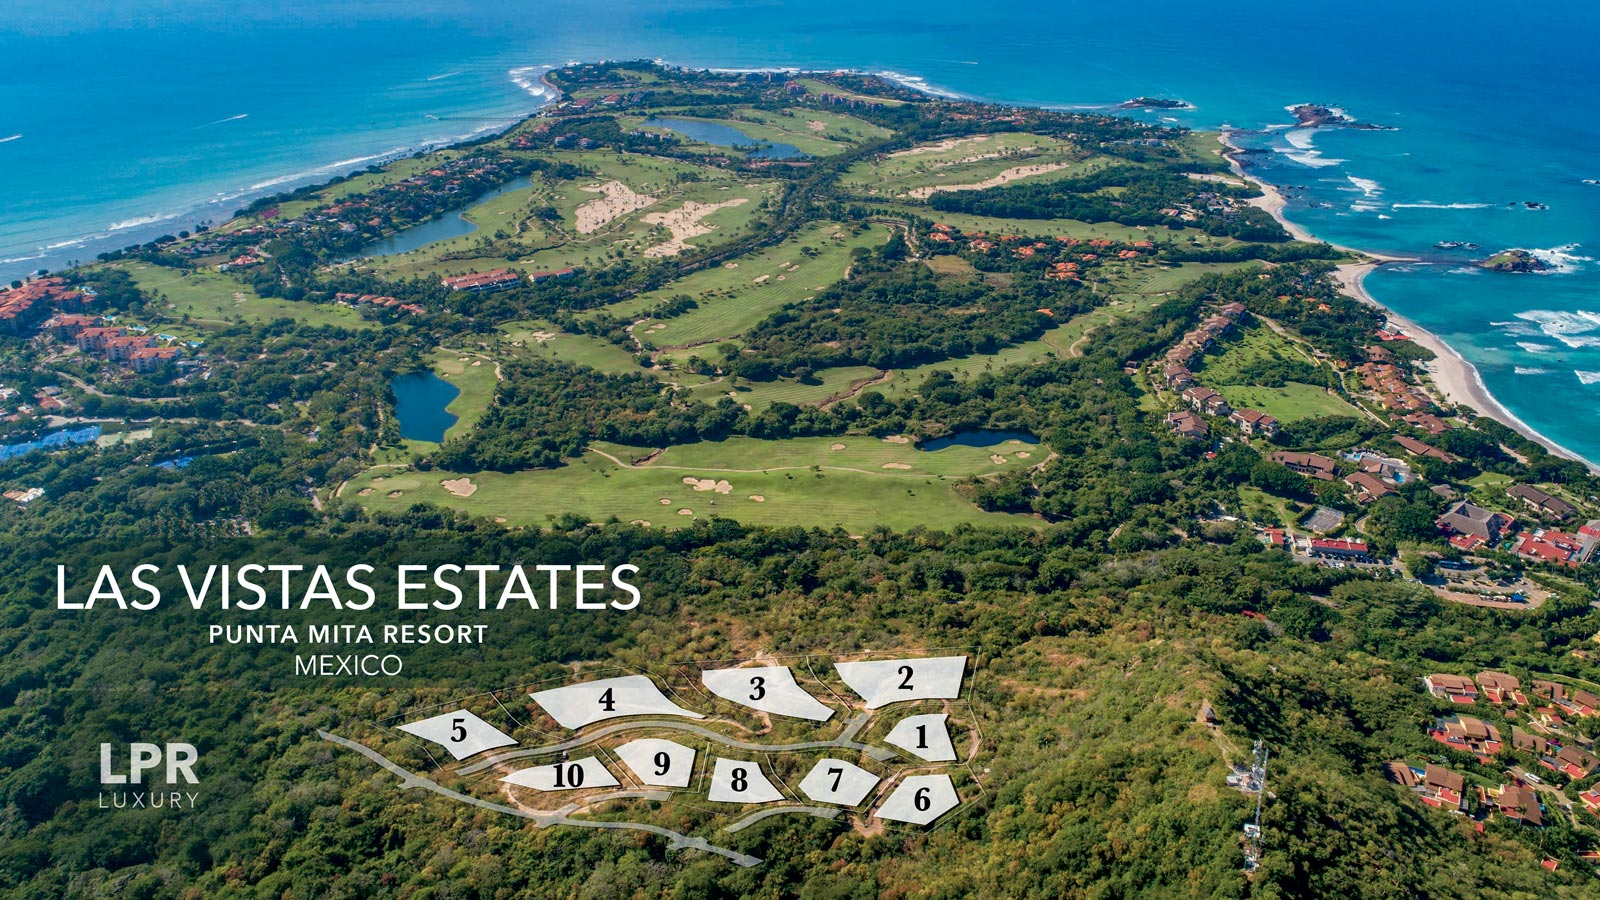 Las Vista Estates - Luxury real estate at the Punta Mita Resort. Hillside homesite building lots for sale overlooking the resort, golf fairways and Las Marietas Islands.